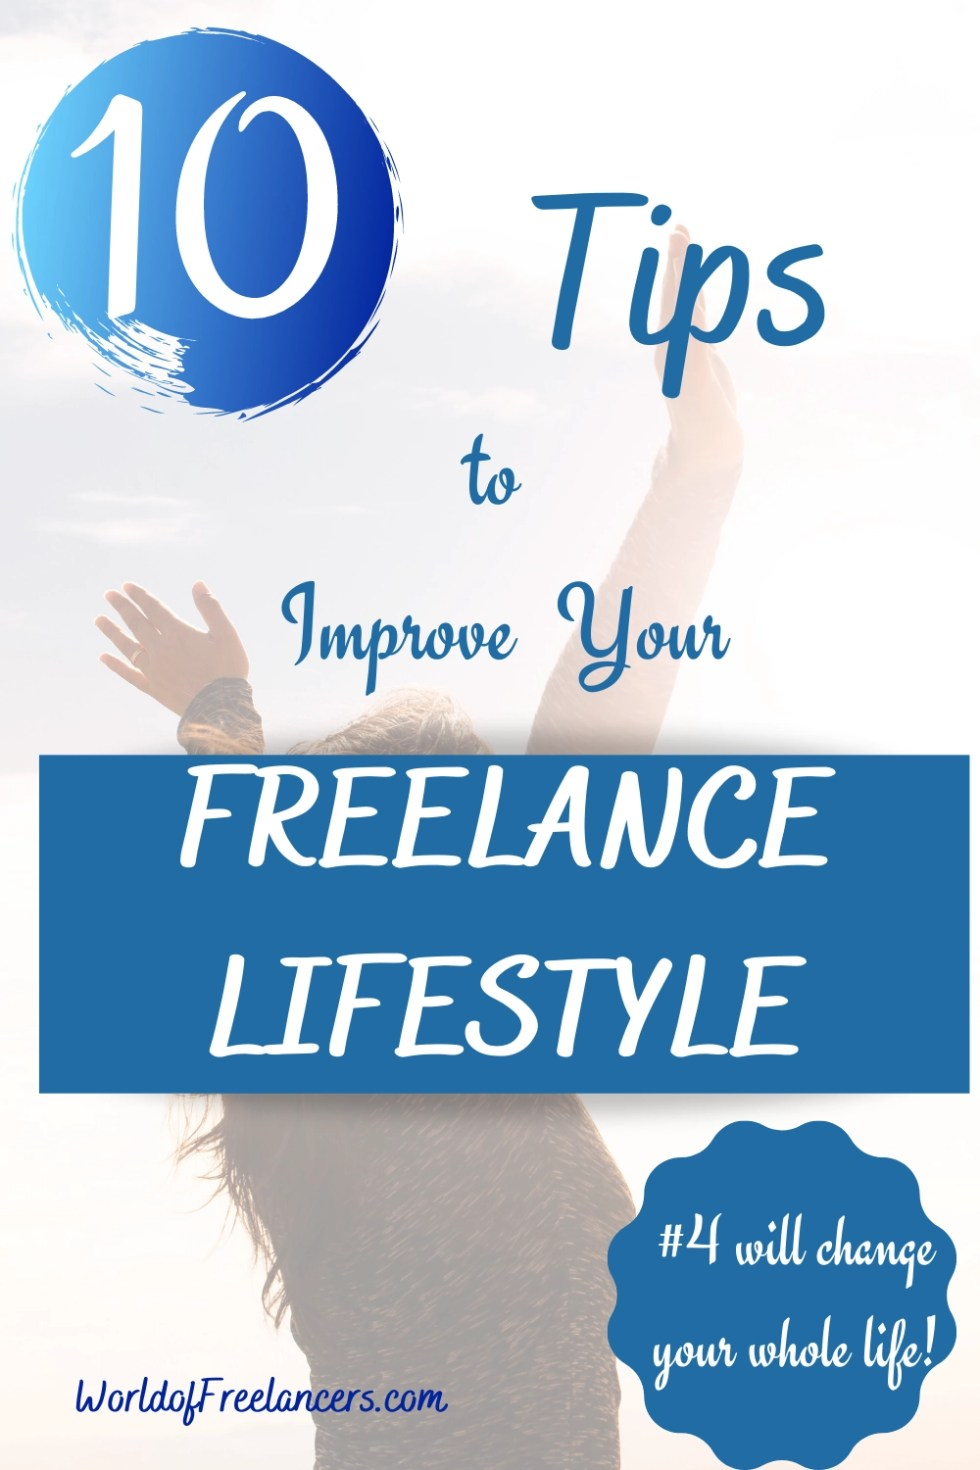 10 Tips to Improve Your Freelance Lifestyle - Pinterest iamge